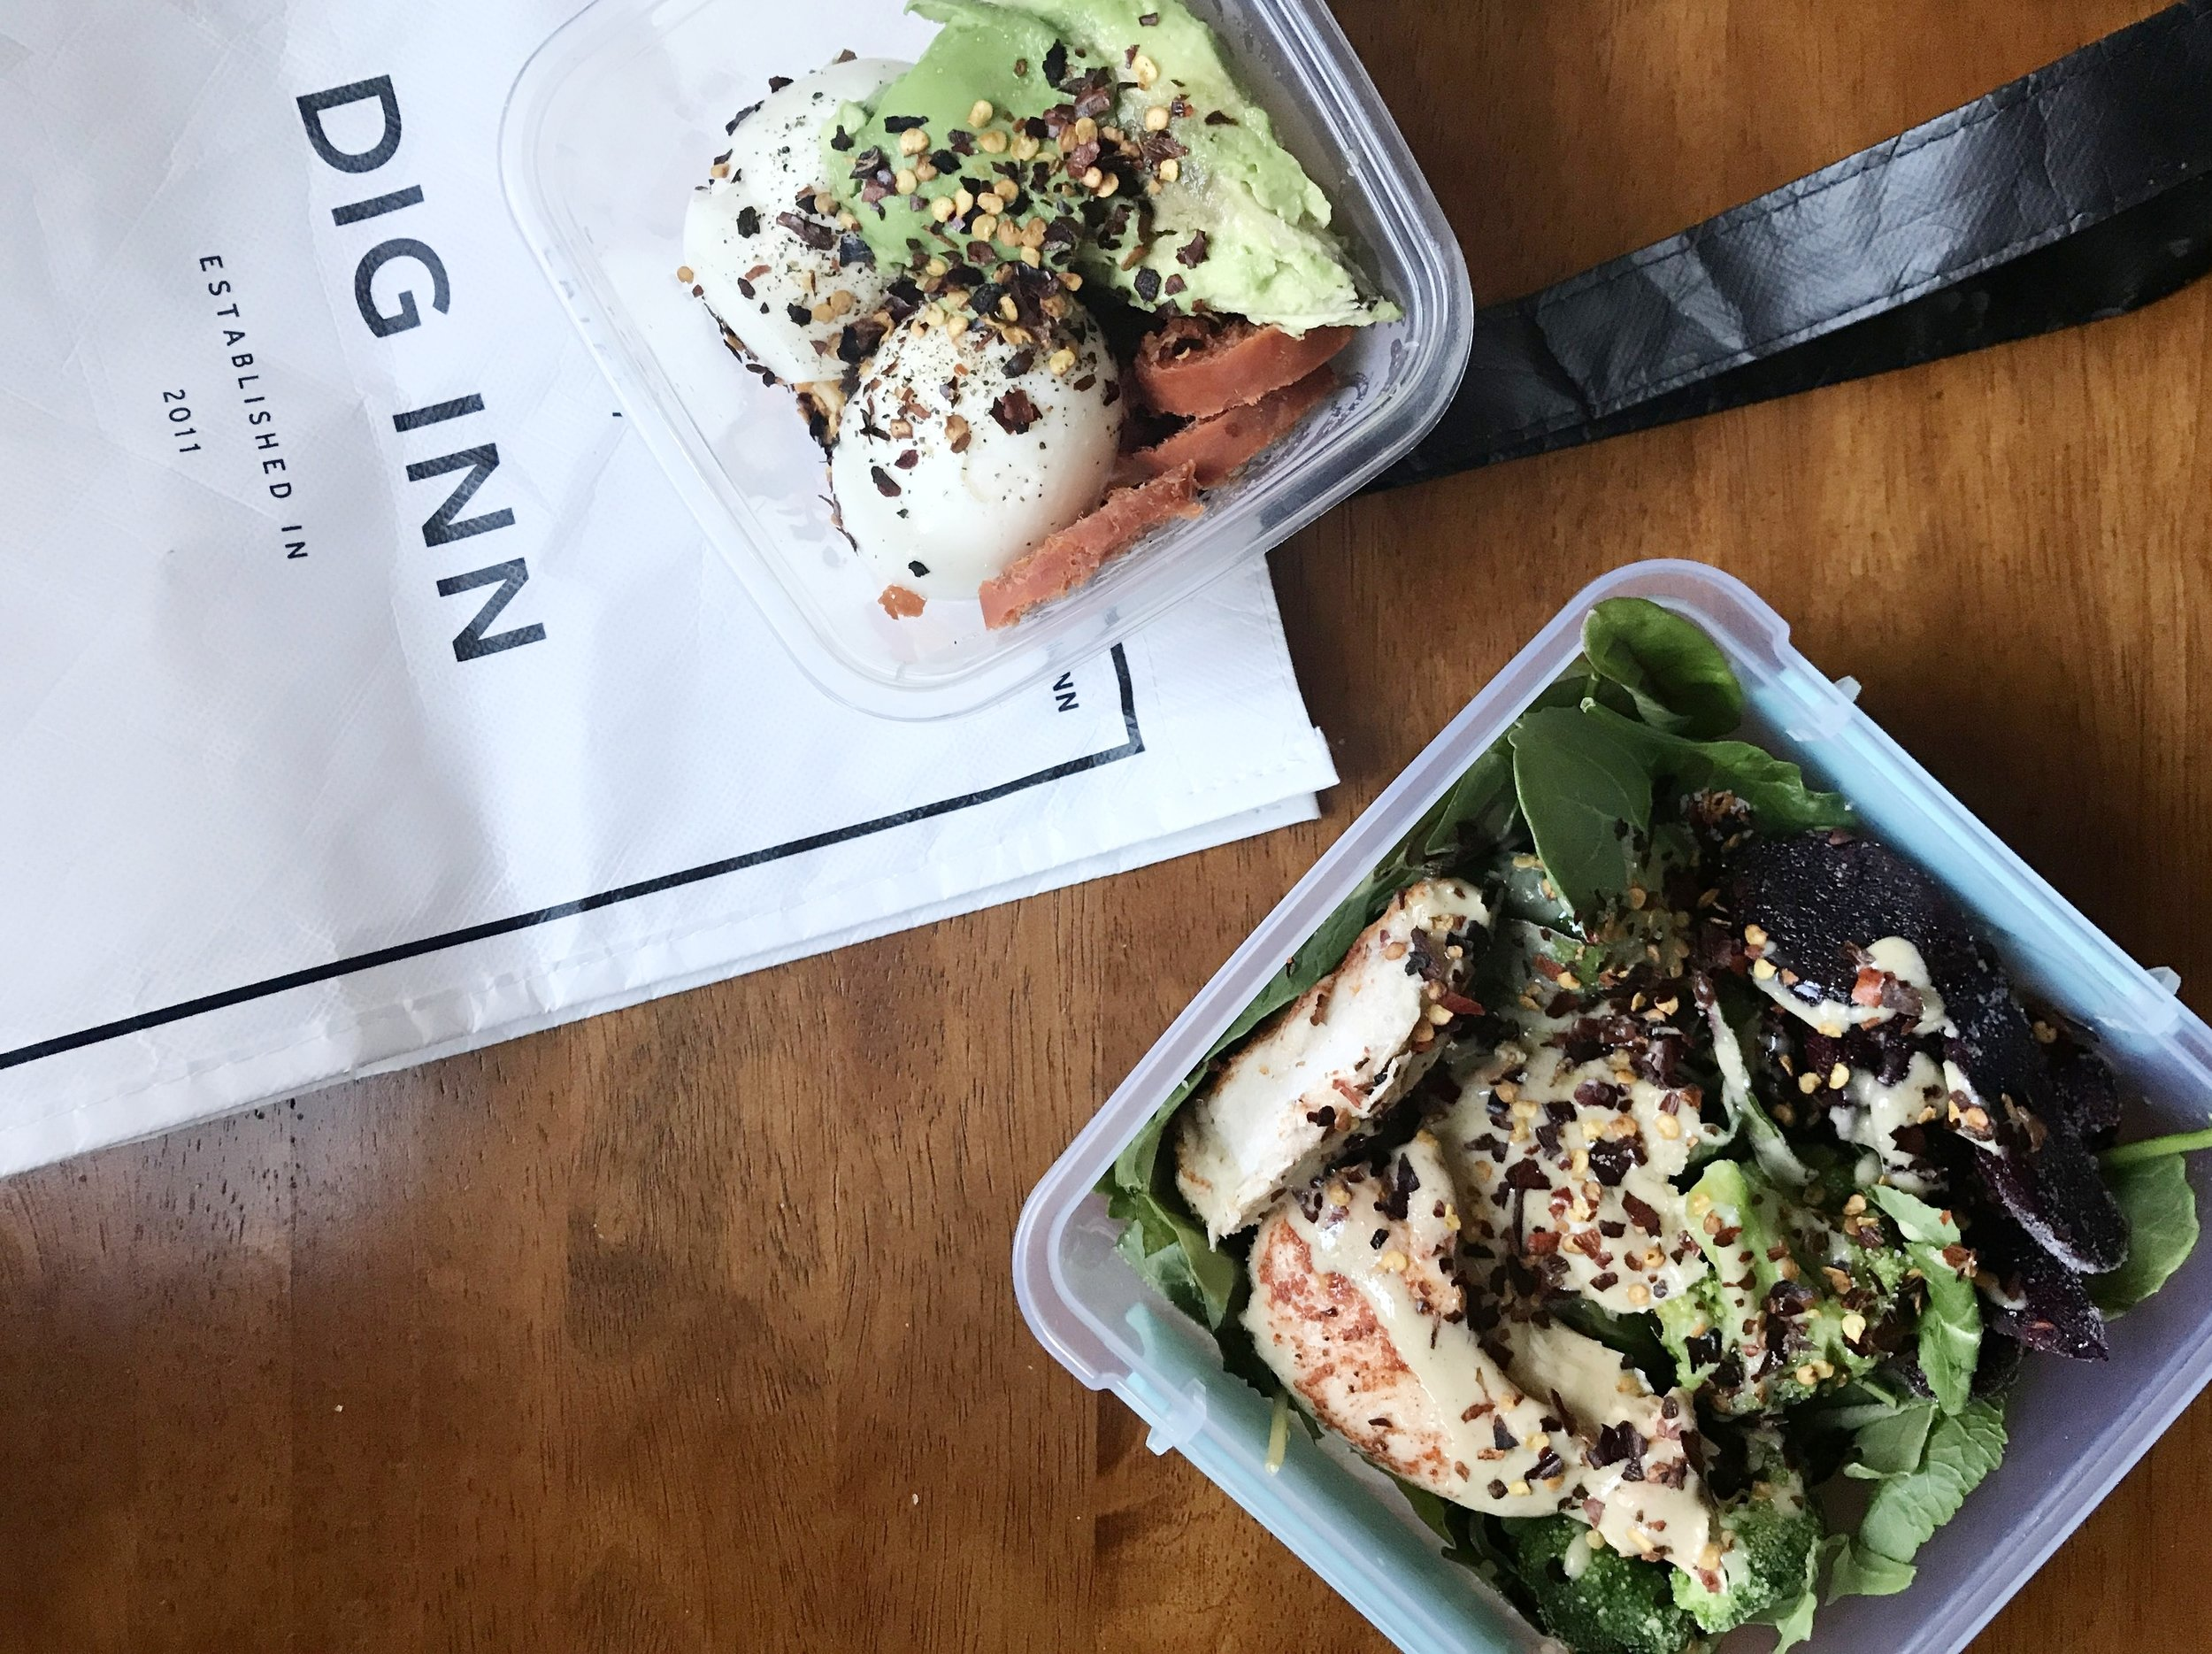 Salad with Roasted Chicken and Lemon Tahini Dressing